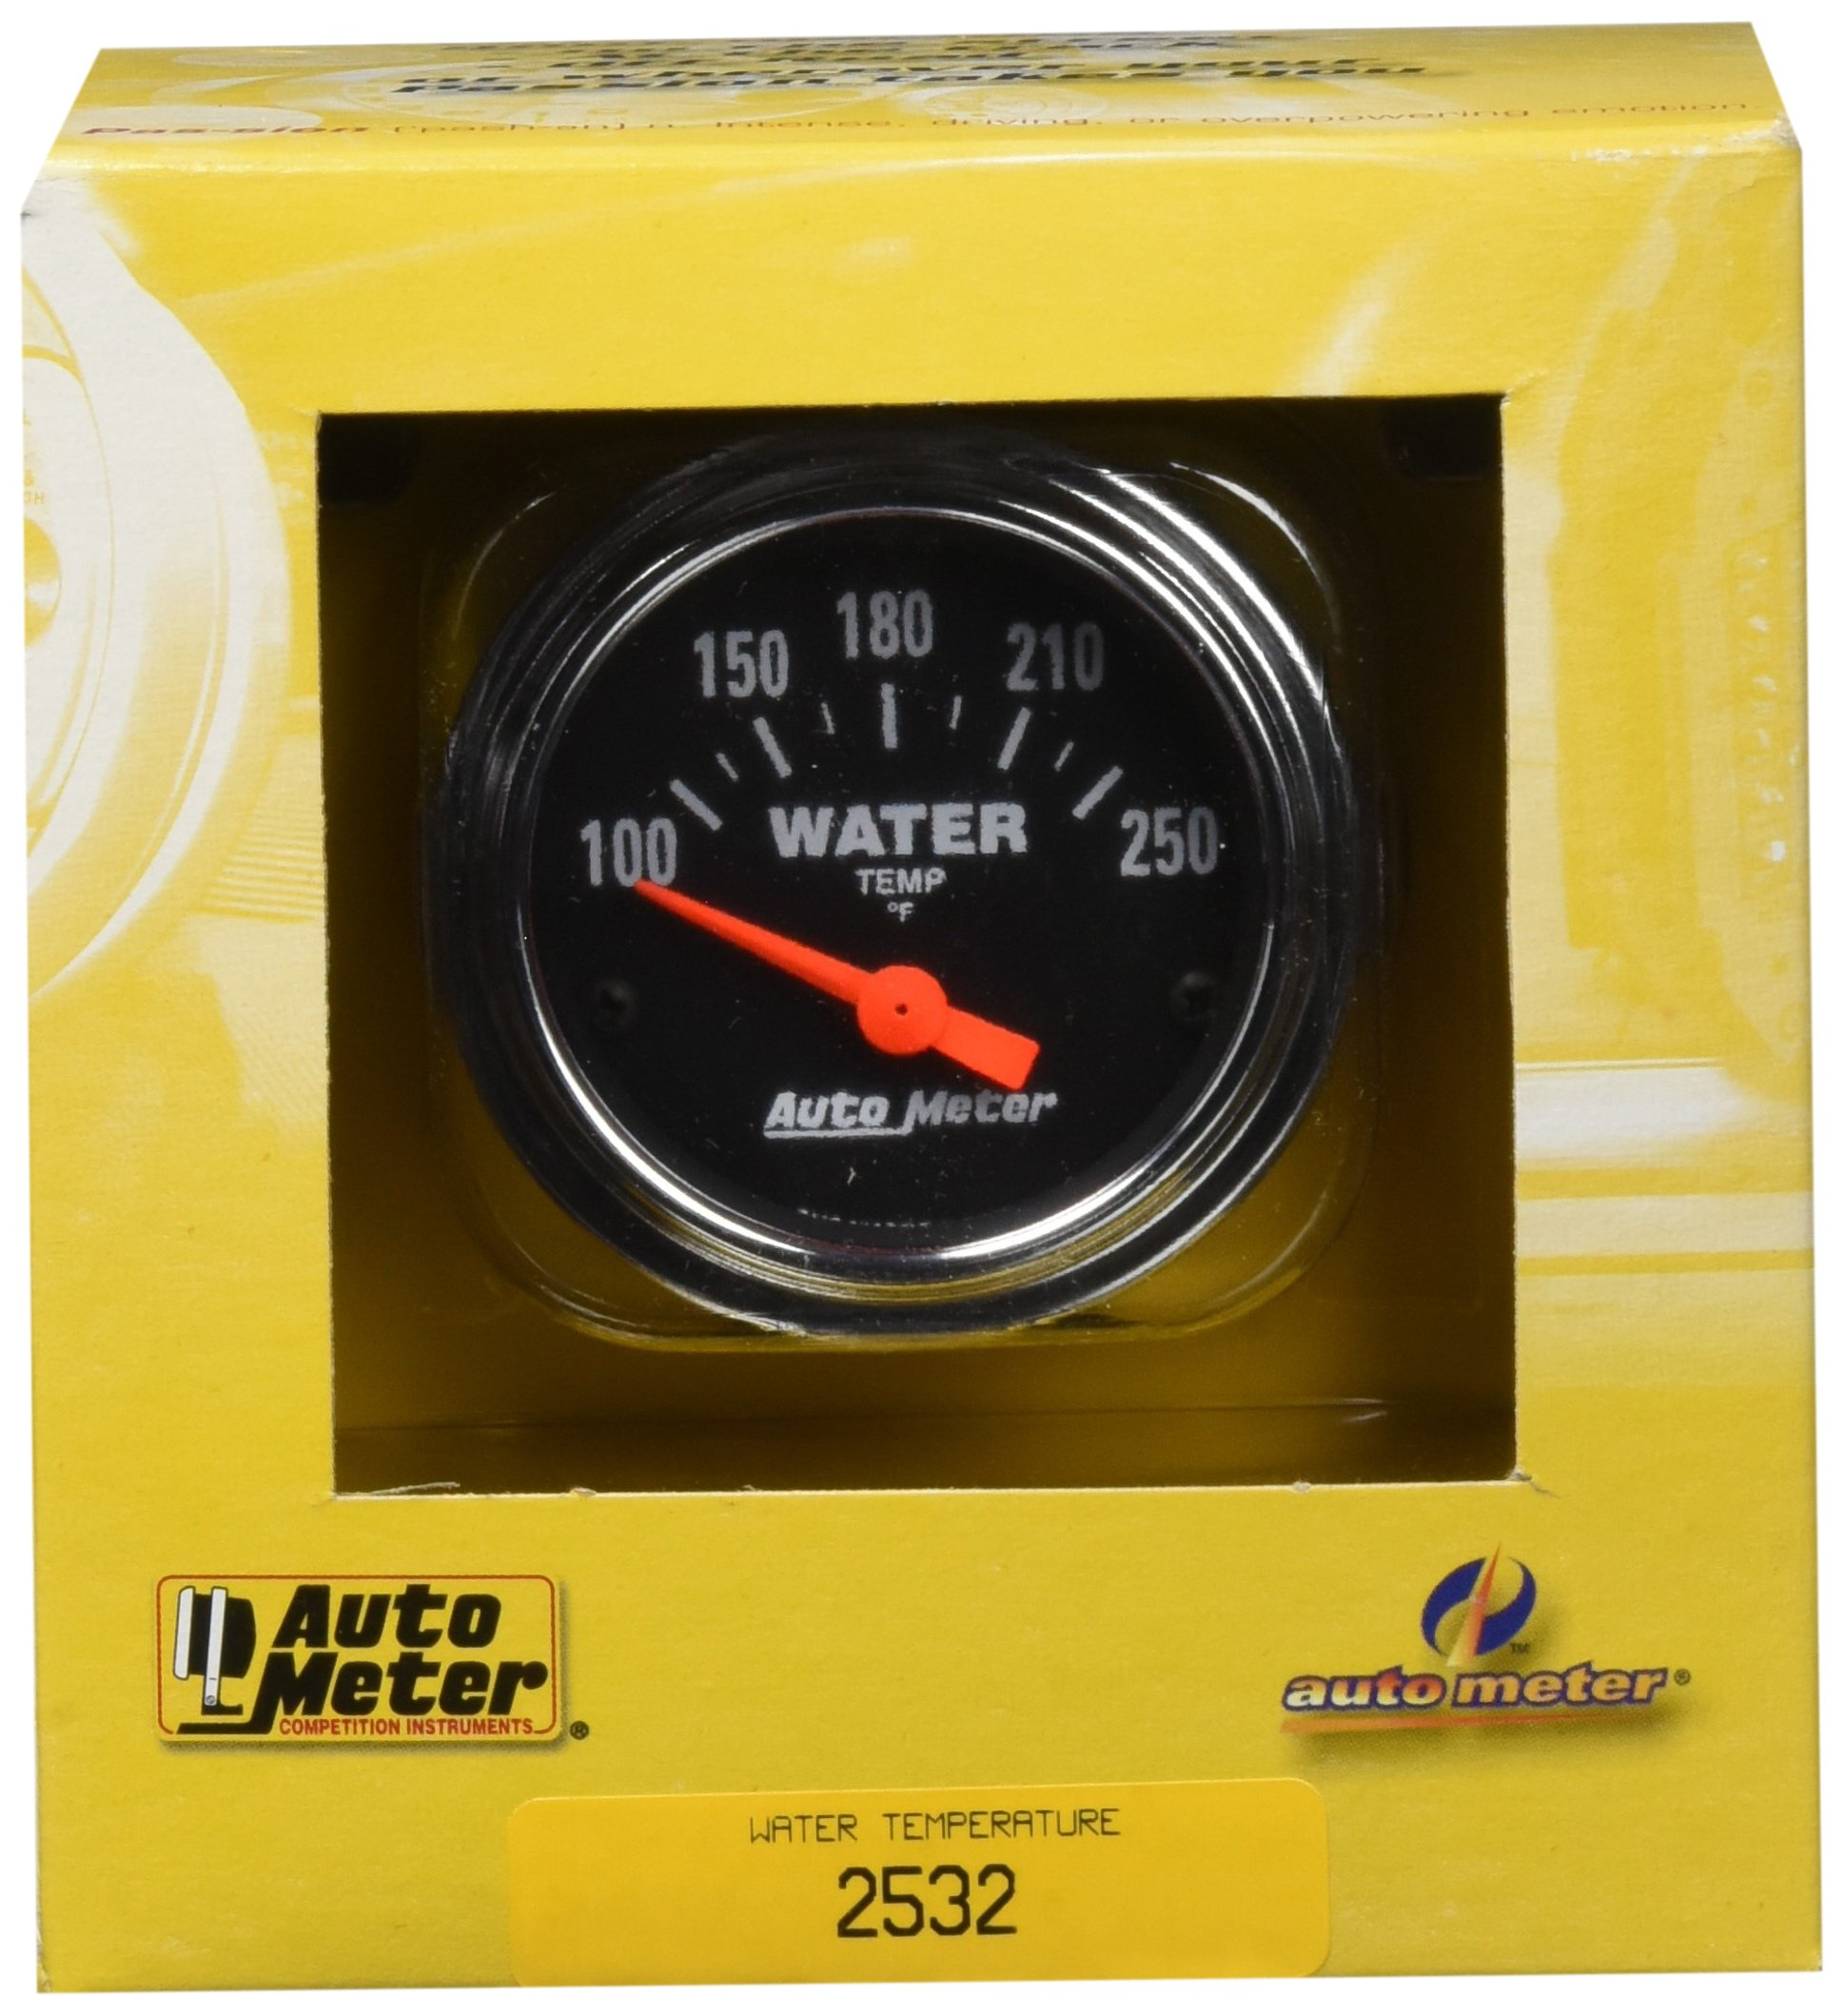 Auto Meter 2532 Traditional Chrome Electric Water Temperature Gauge by Auto Meter